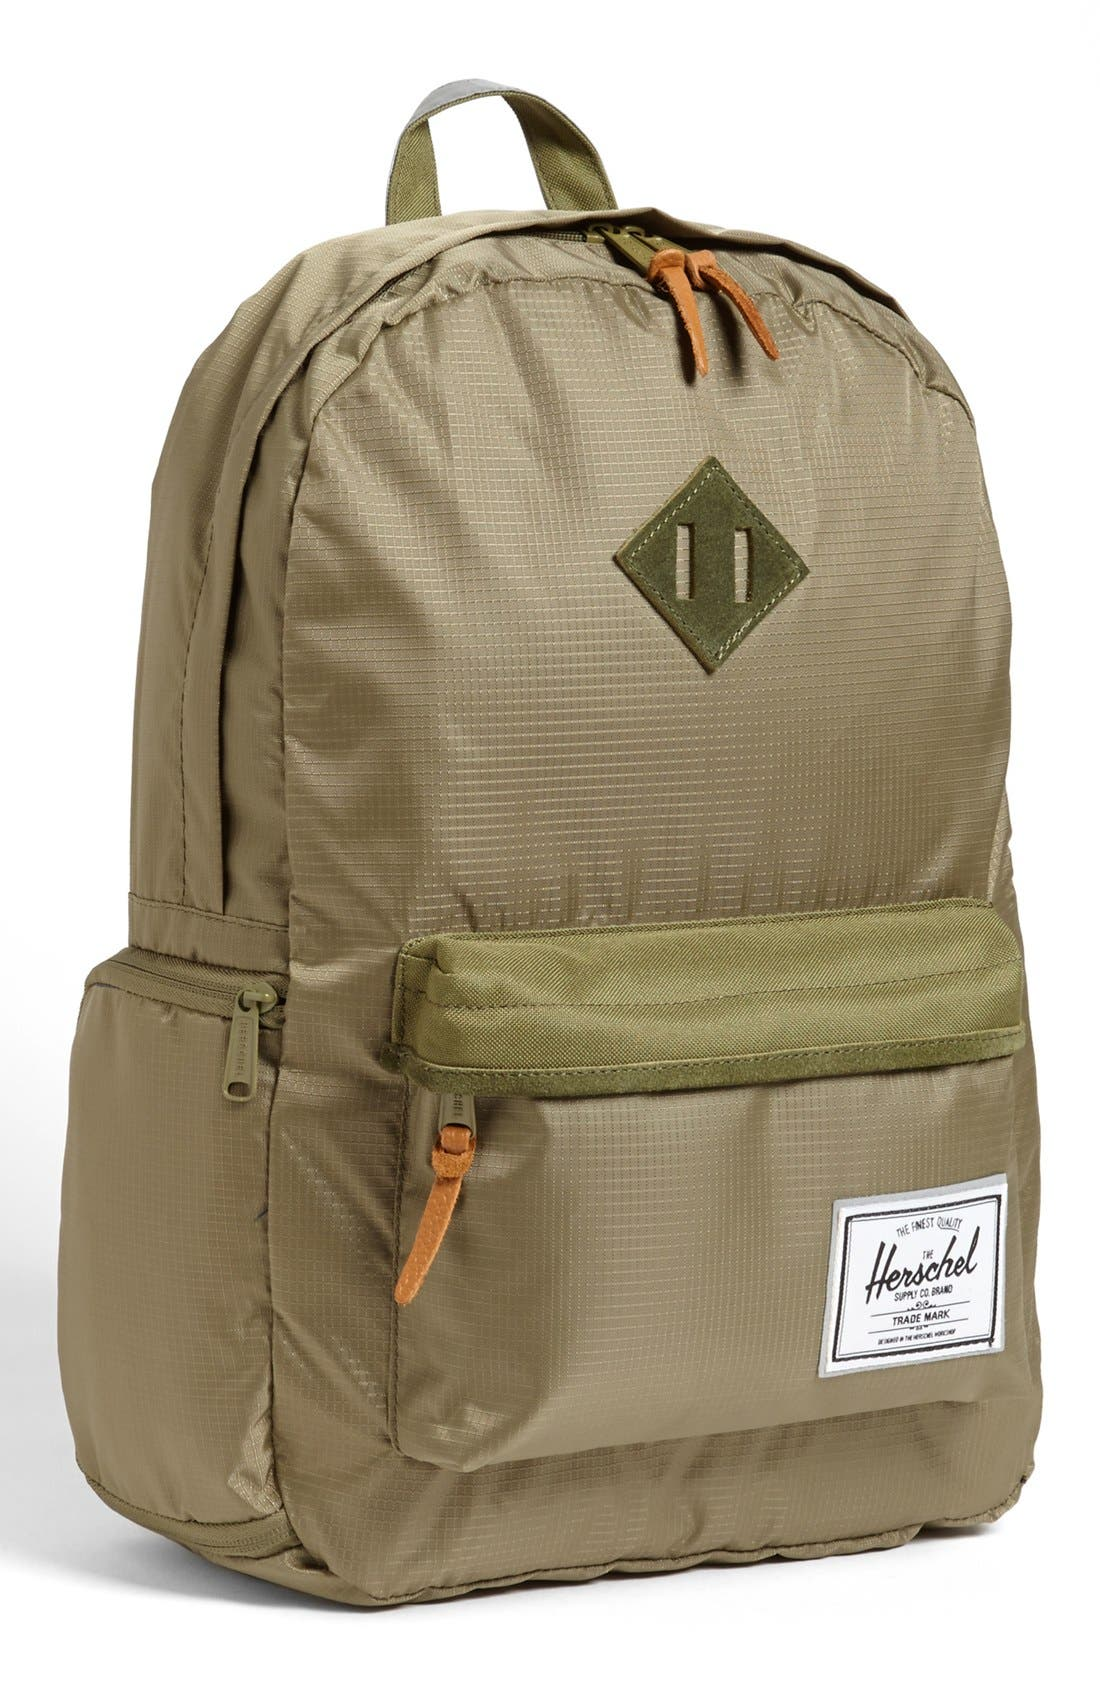 Main Image - Herschel 'Heritage - New Balance' Backpack